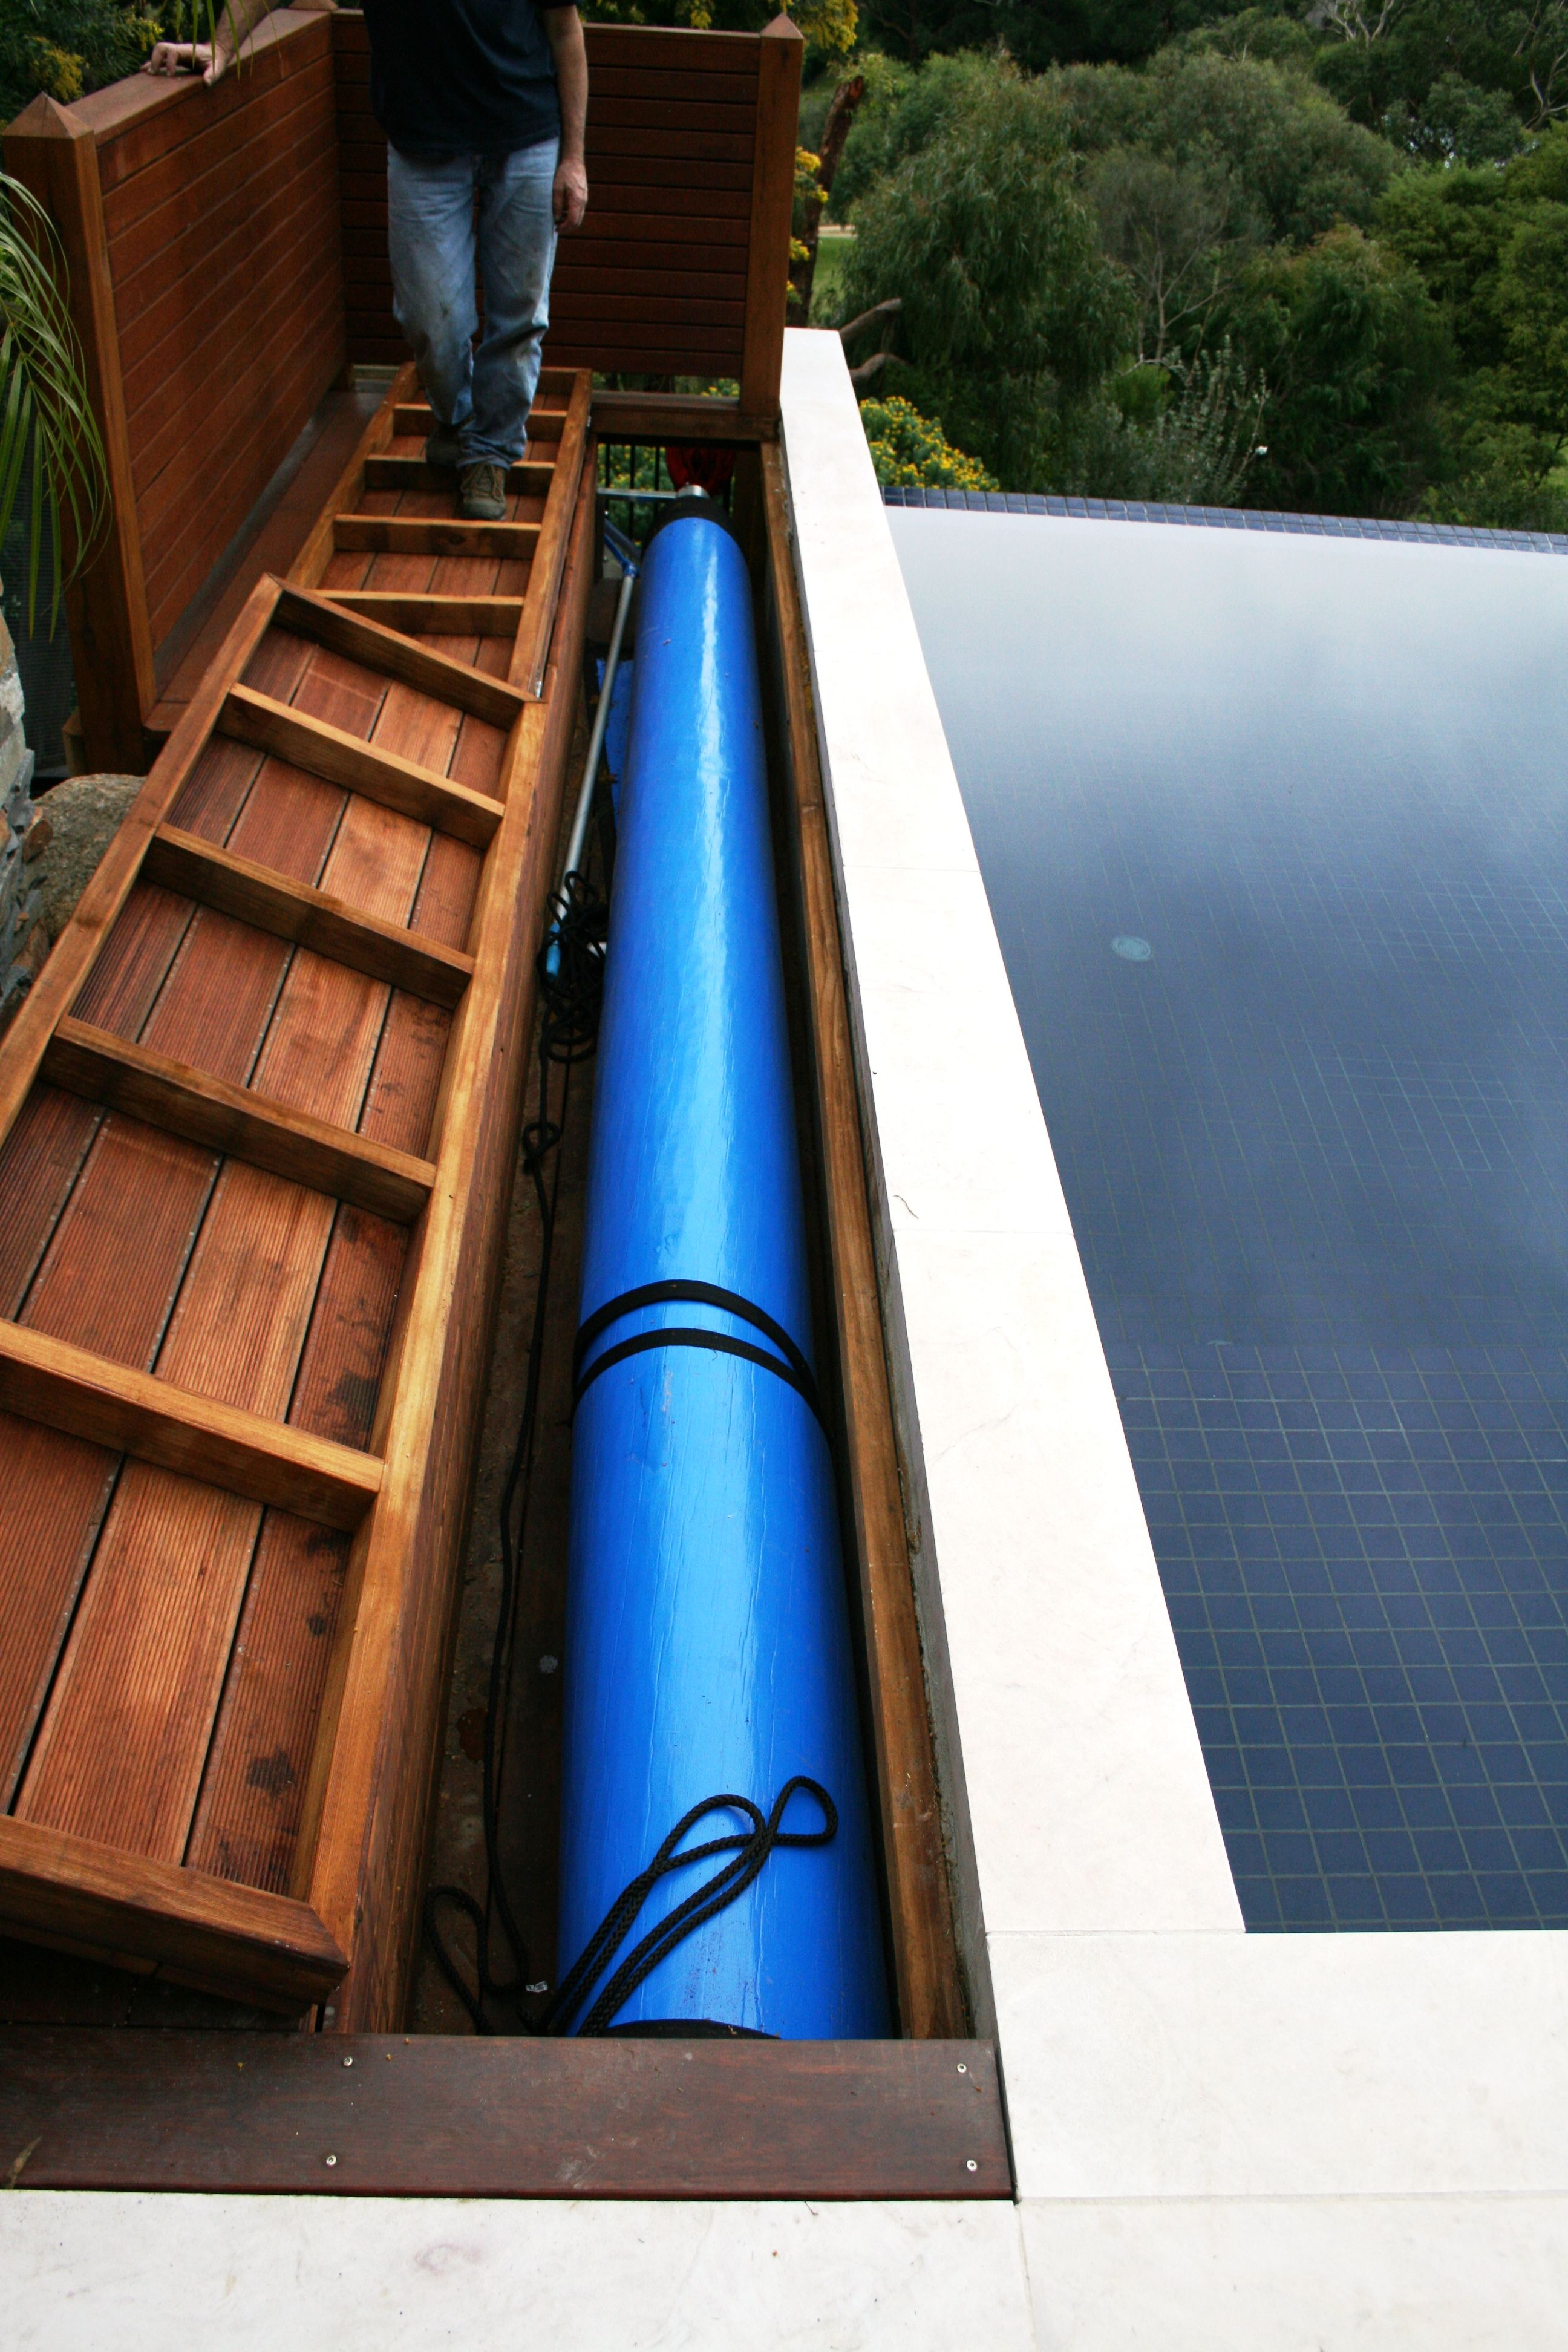 Pin by Nicole Fitzgerald on Pool | Hidden pool, Solar pool ...